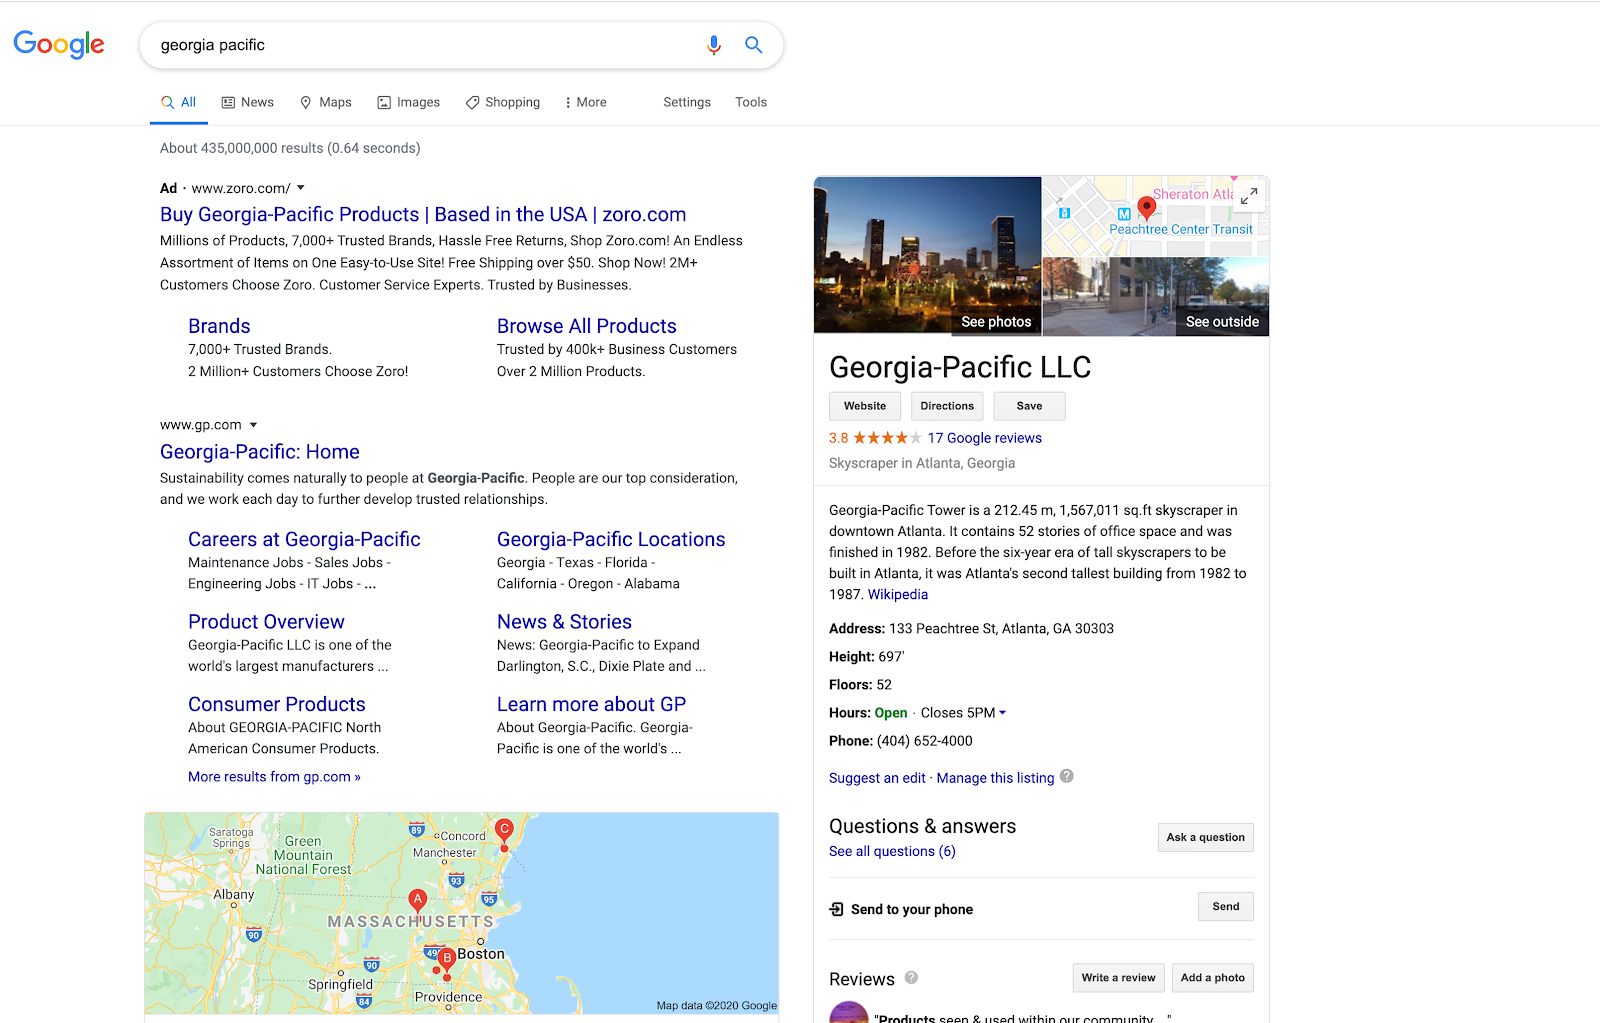 Google search result showing a business listing